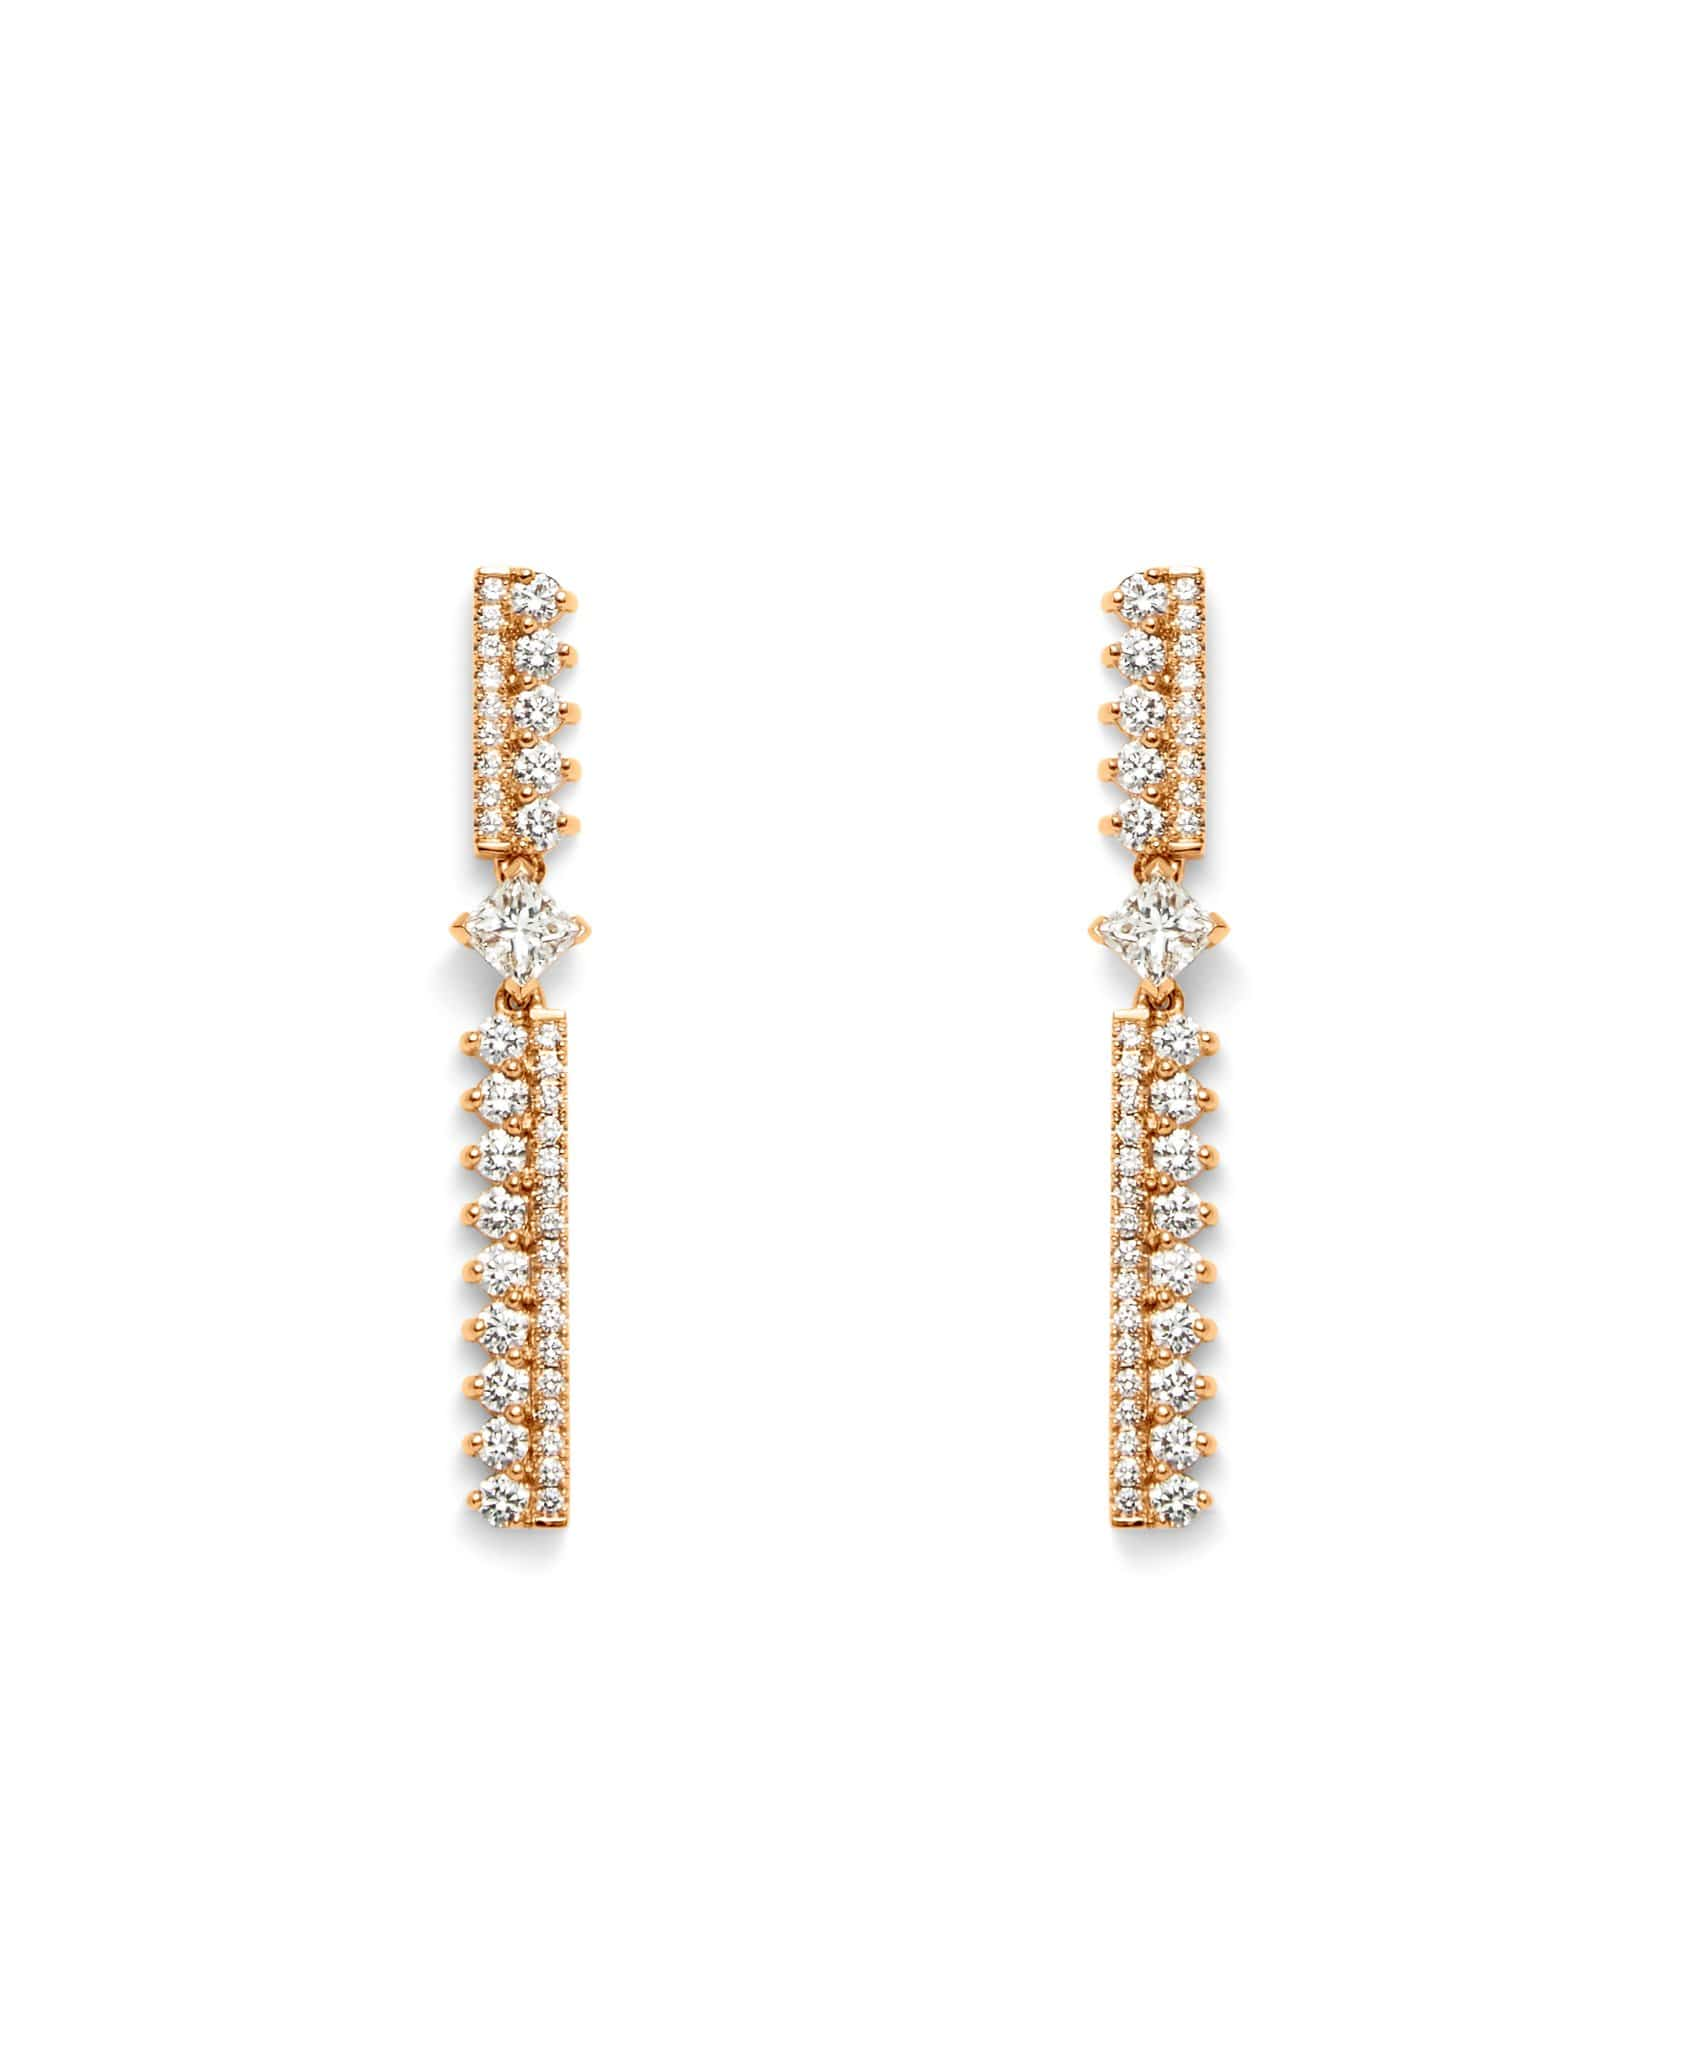 Paulette Diamond Earrings: Discover Luxury Fine Jewelry | Nouvel Heritage